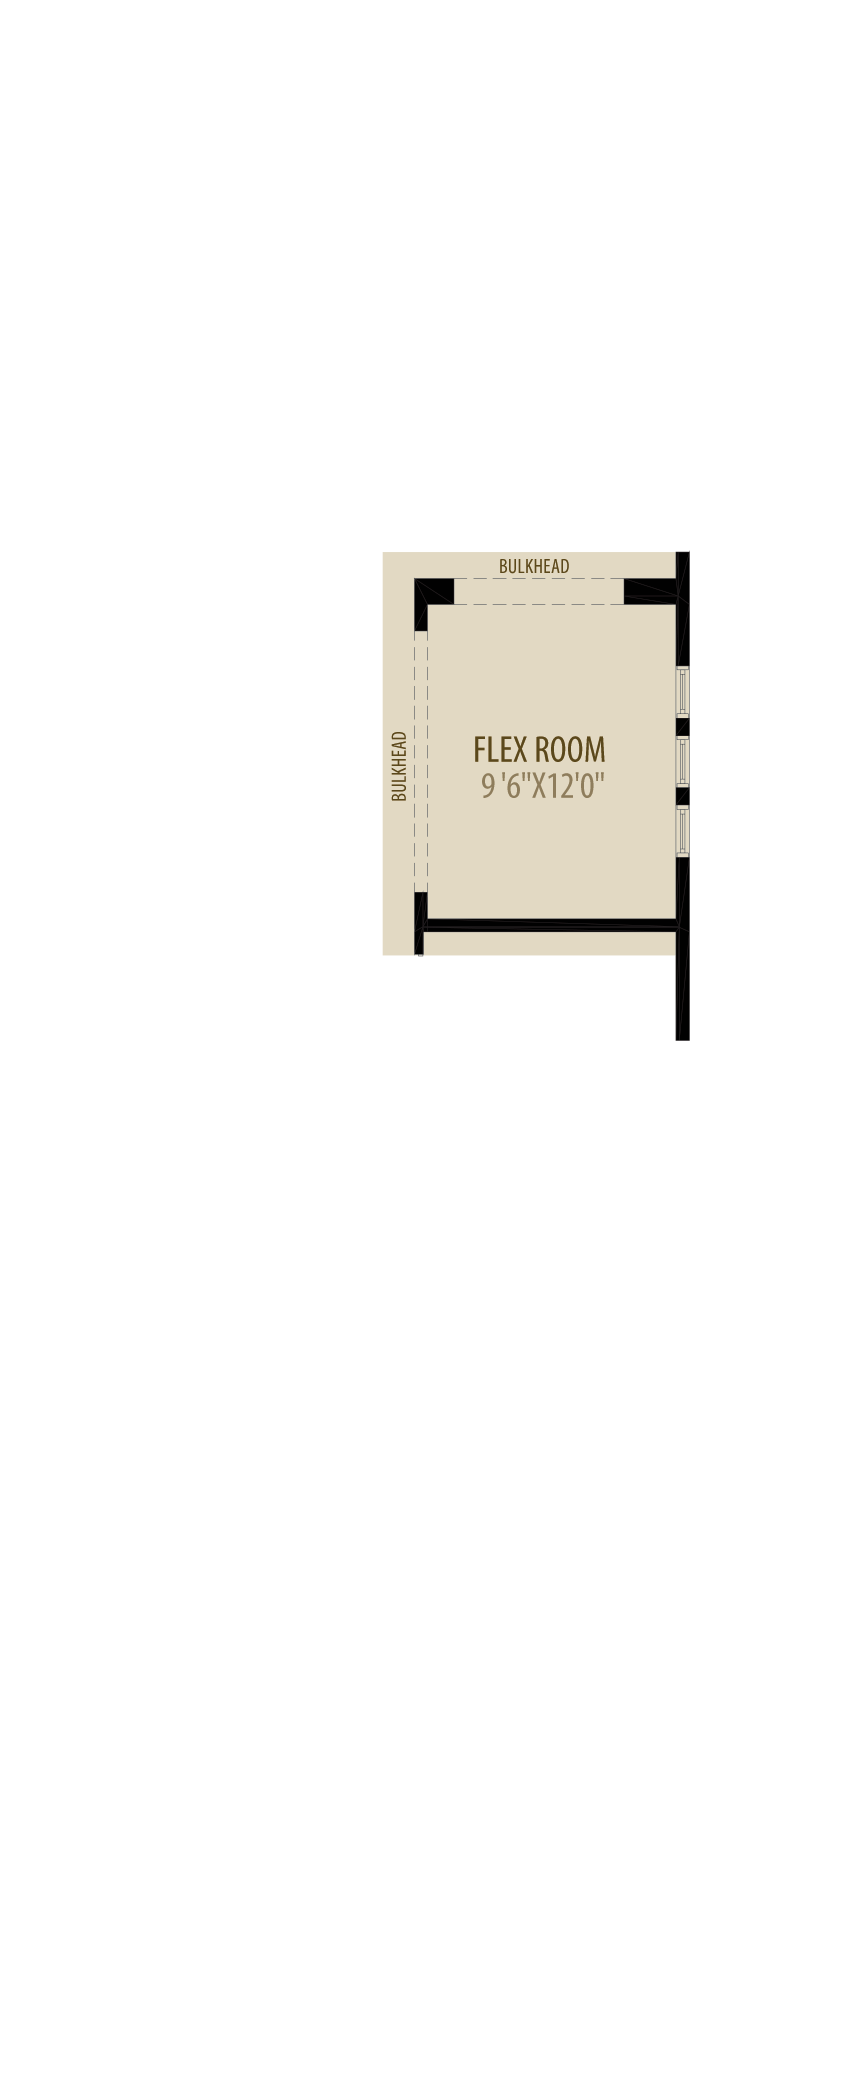 Flex Room Adds 120 sq ft